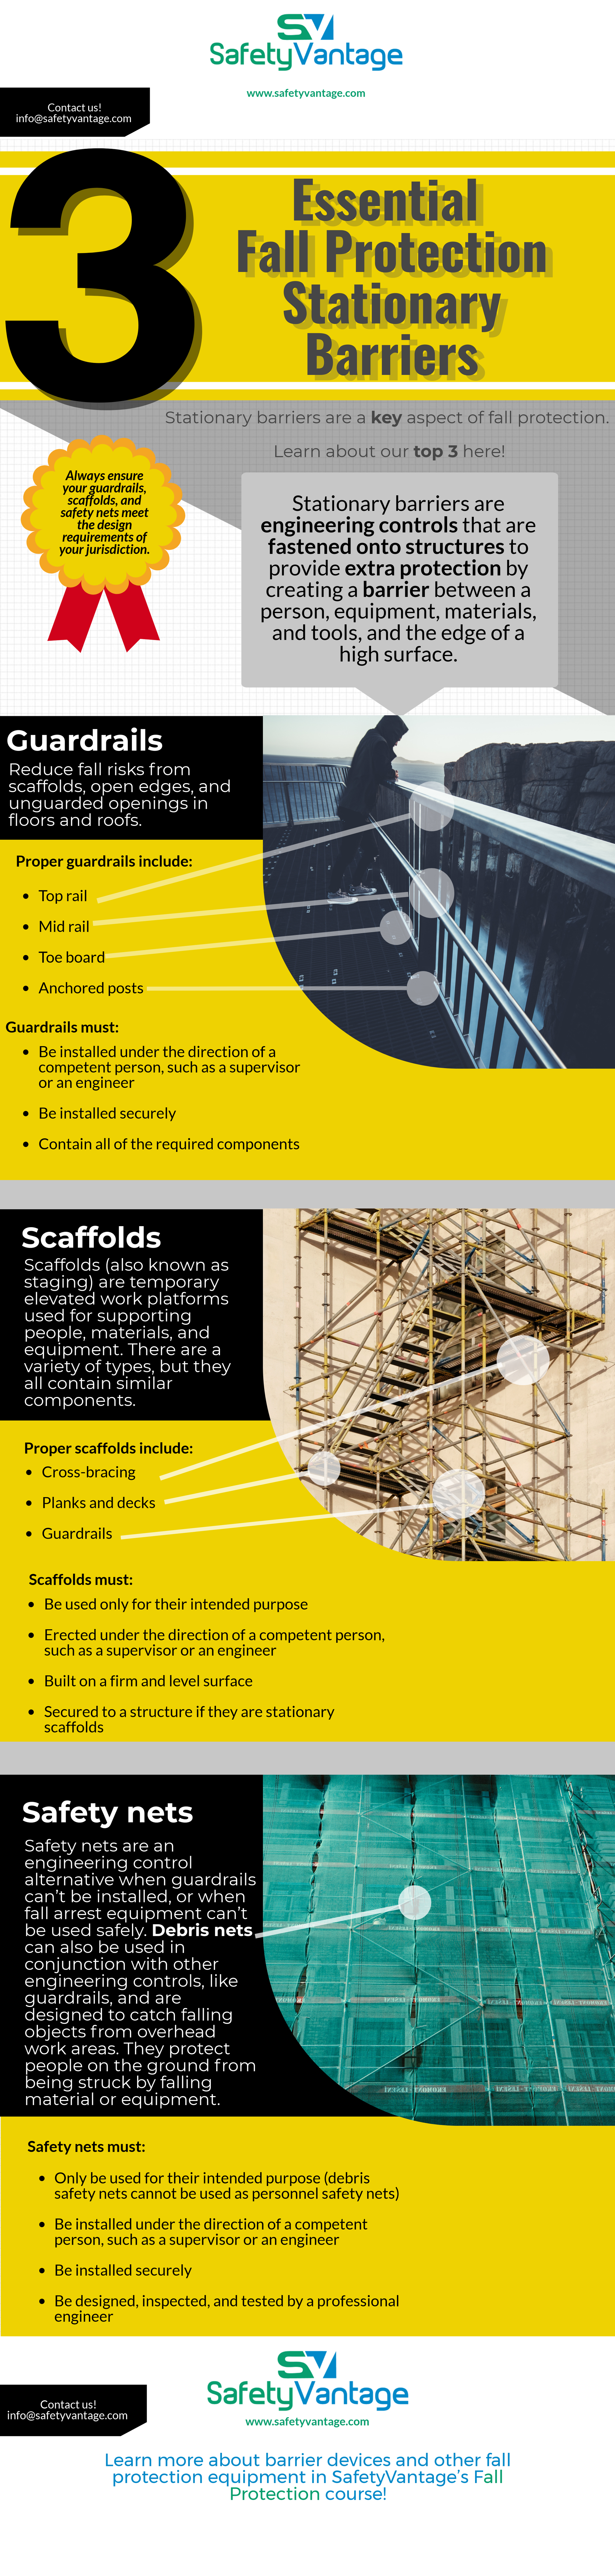 InfoGraphic - Working at heights is dangerous and stationary barriers are a key aspect of fall protection. Learn about our top 3 here!